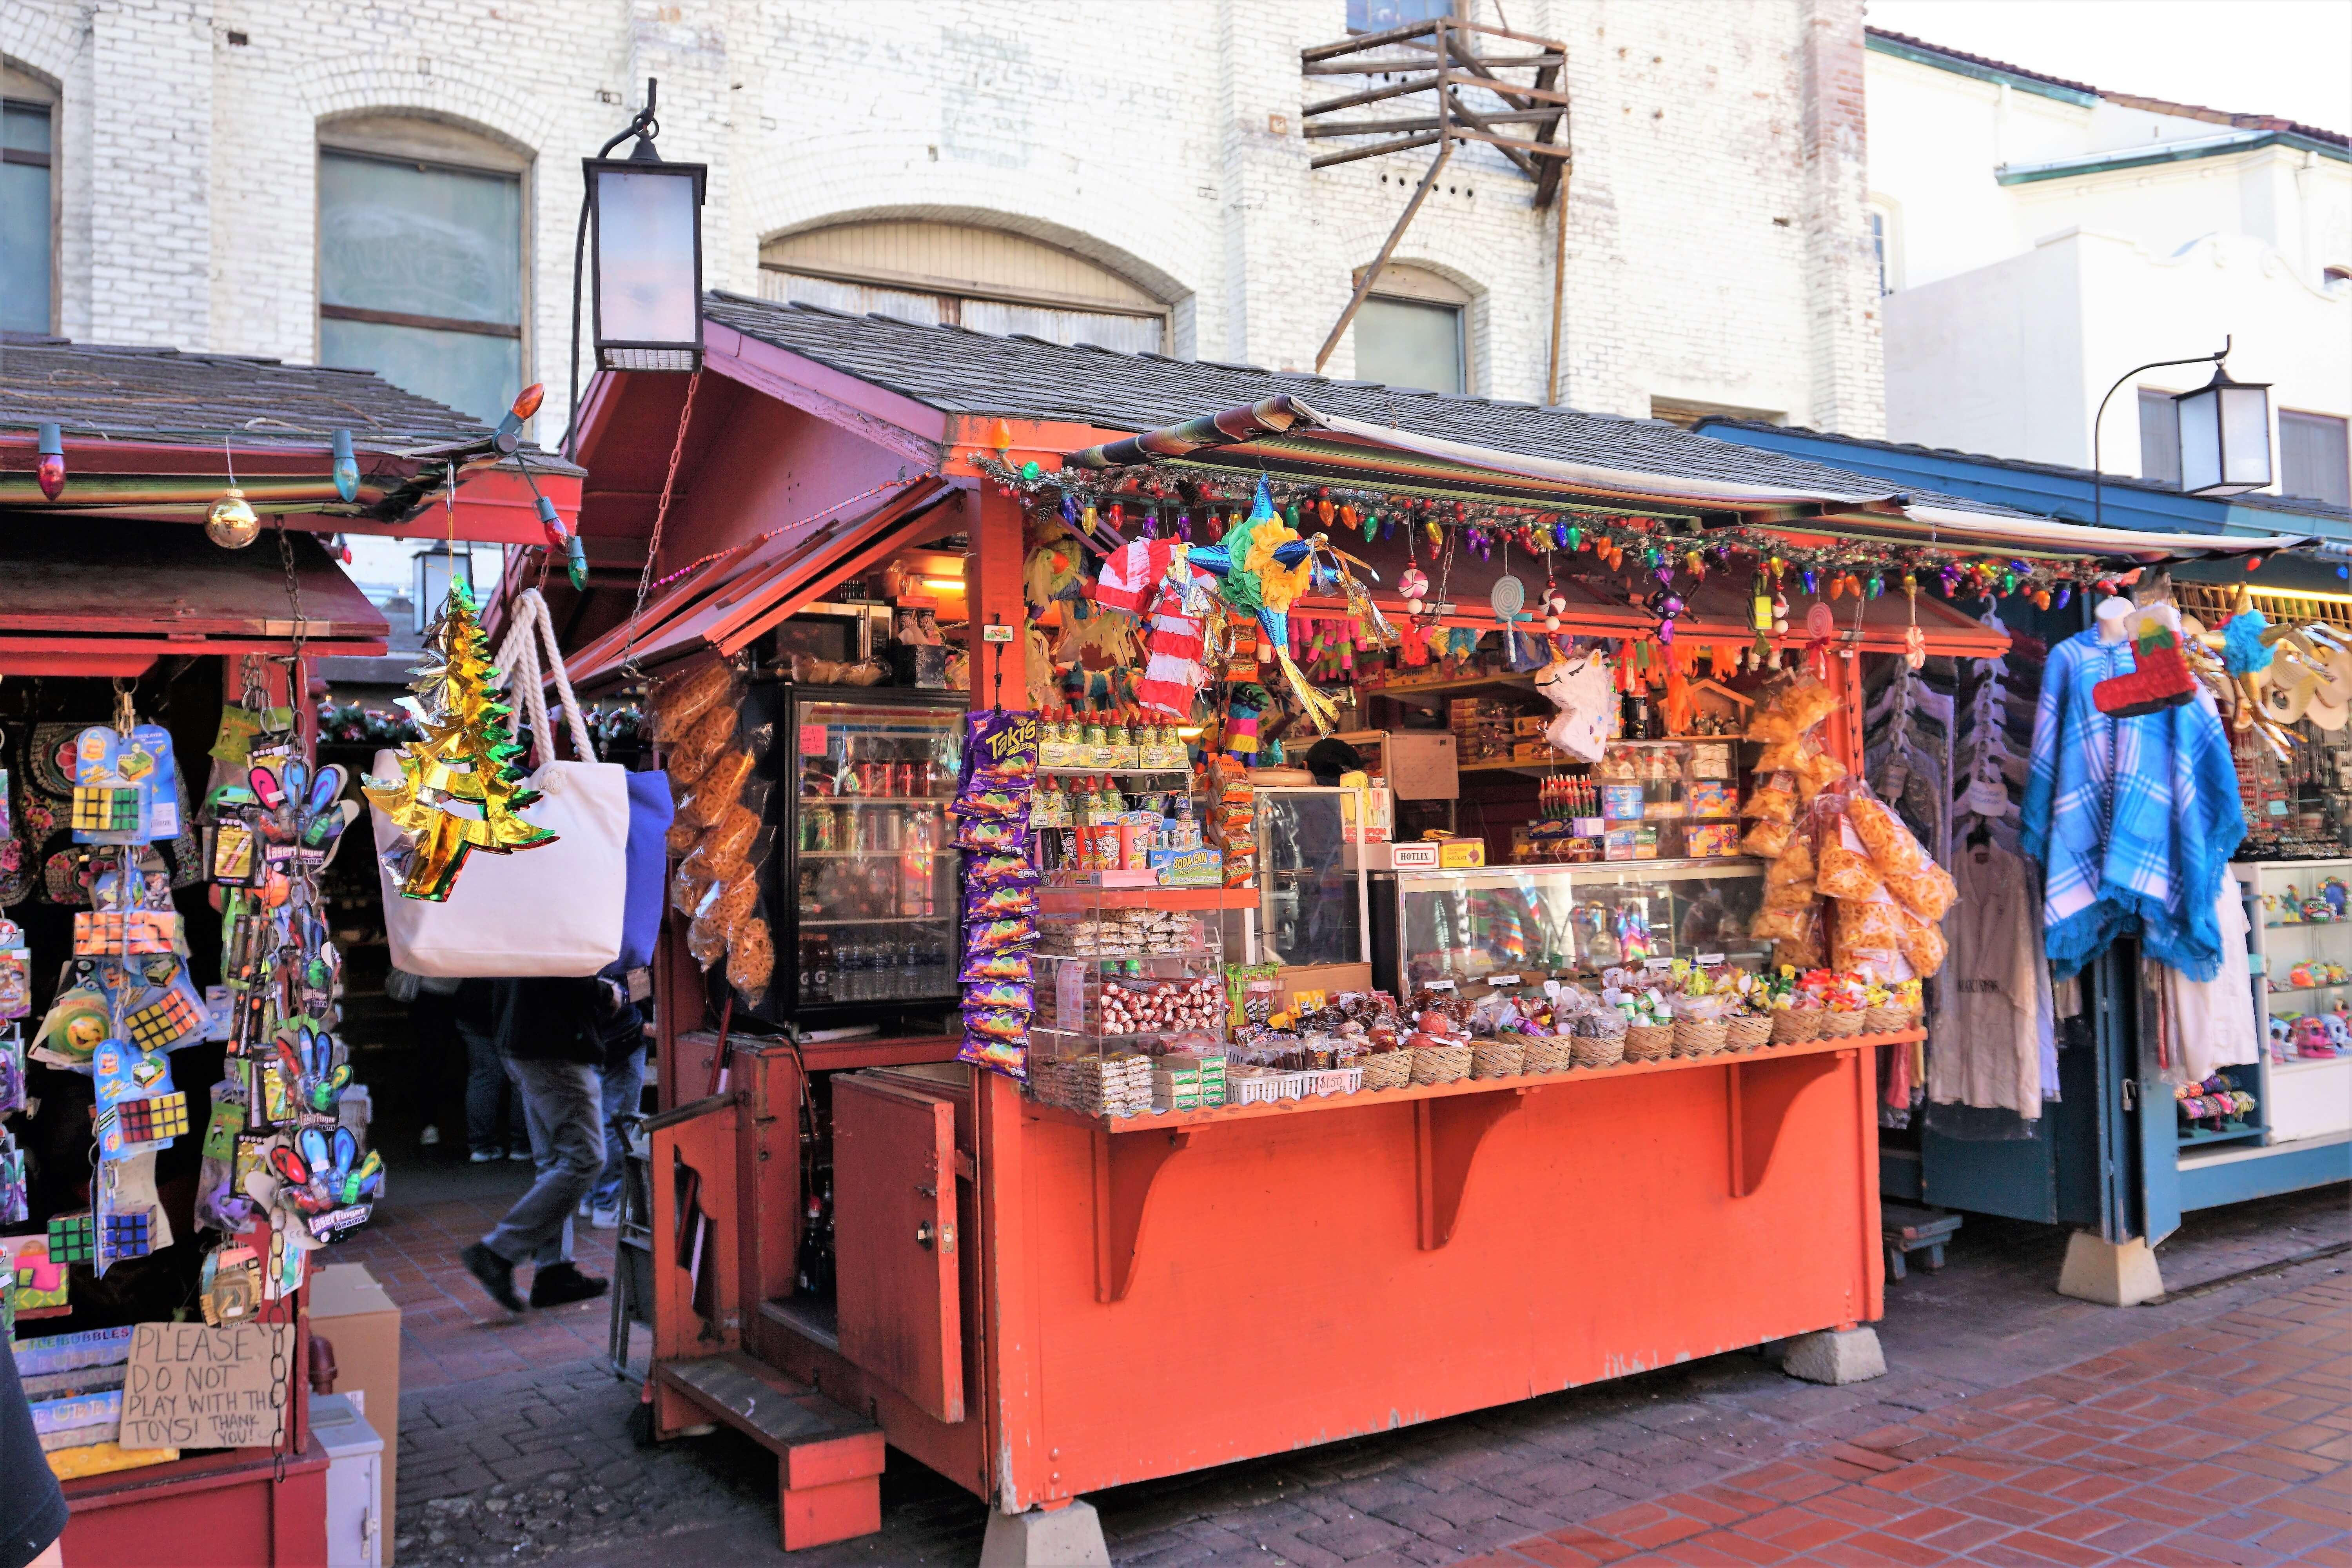 Colorful vendor's stall on Olvera Street